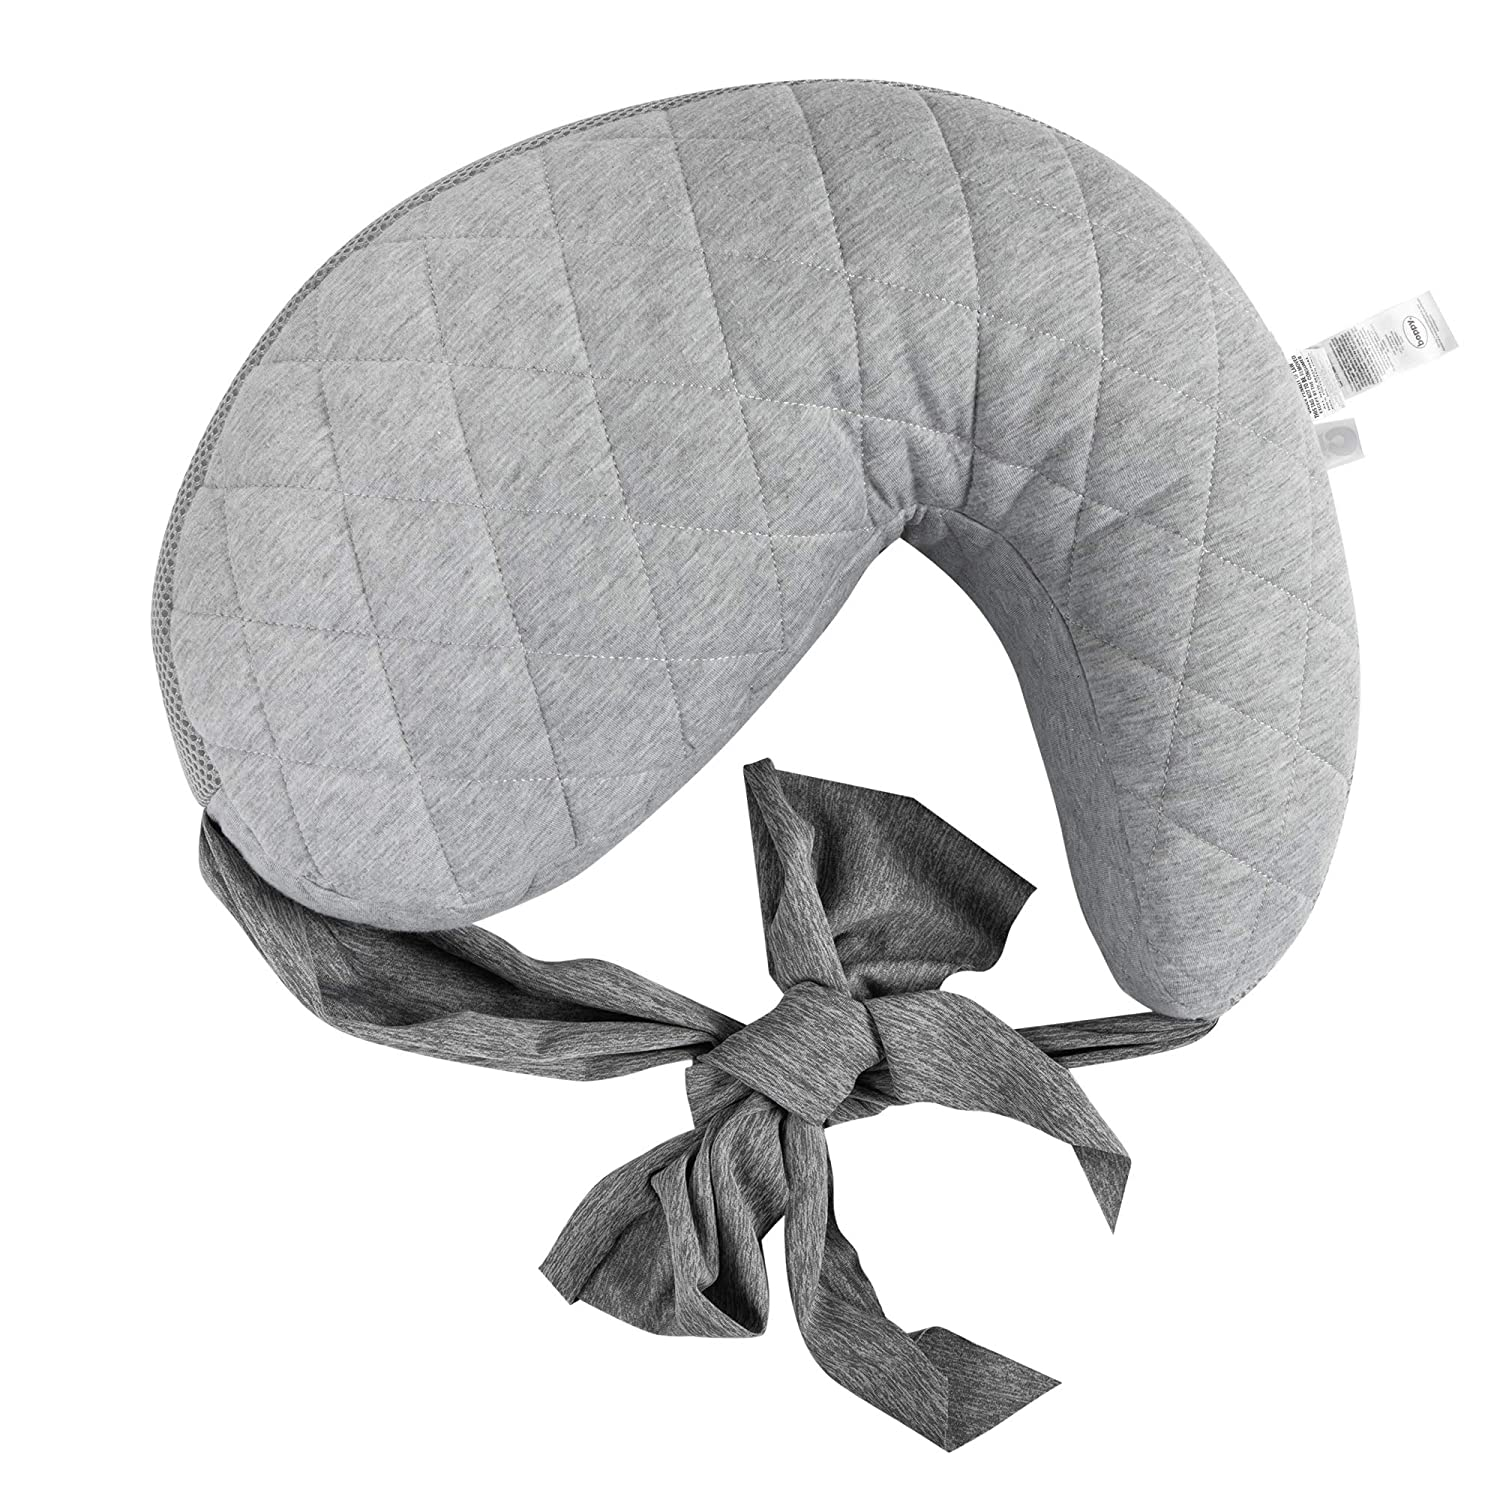 Boppy Anywhere Nursing Pillow | Breastfeeding and Bottle Feeding Support at Home and for Travel | Plus Sized to Petite| Machine Washable | Soft Quilted Gray with Stretch Belt